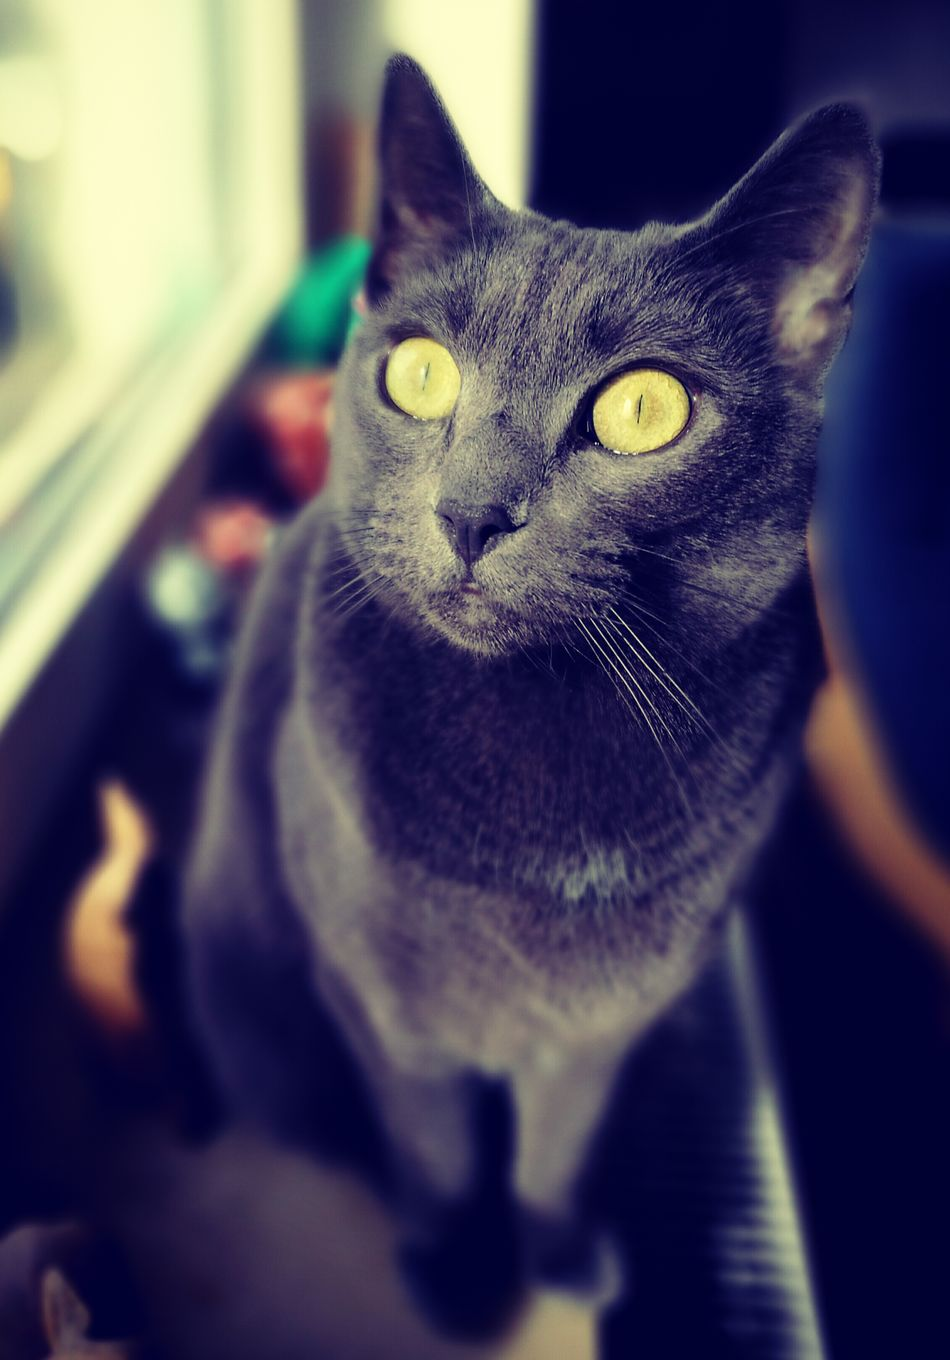 Domestic Animals Pets No People Animal Themes Domestic Cat Yellow Eyes One Animal Cat♡ Cats 🐱 RussianBlue